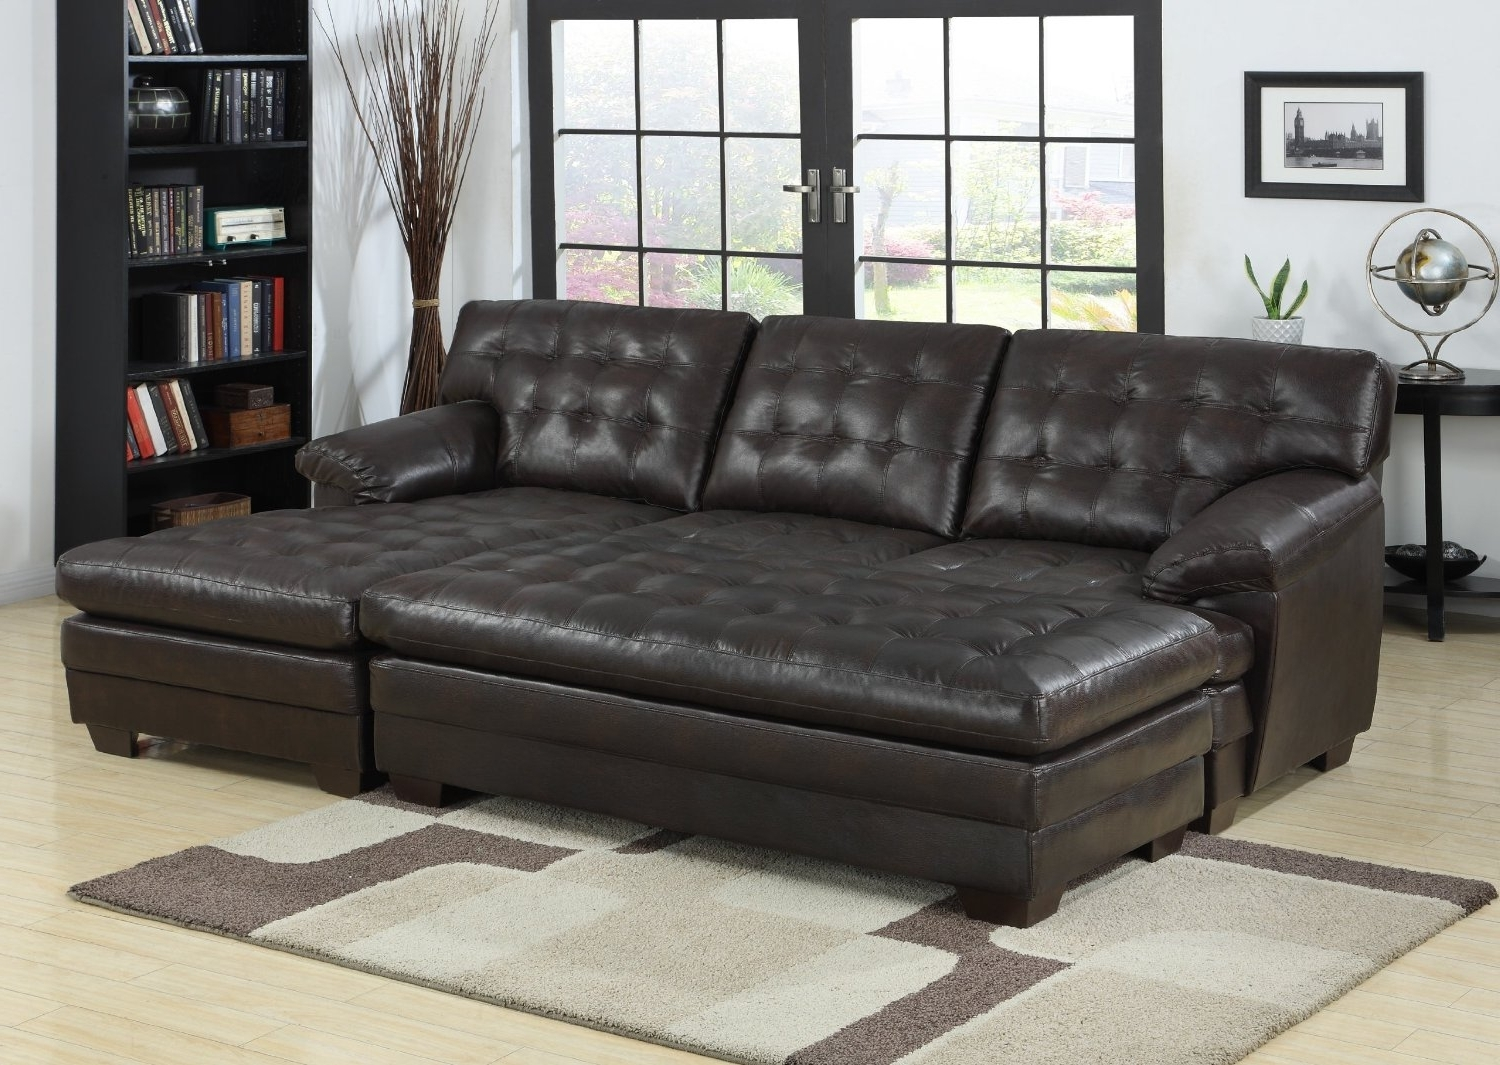 Favorite Double Chaise Lounge Sofa Image Gallery — The Home Redesign : The With Regard To Double Chaise Lounge Sofas (View 4 of 15)